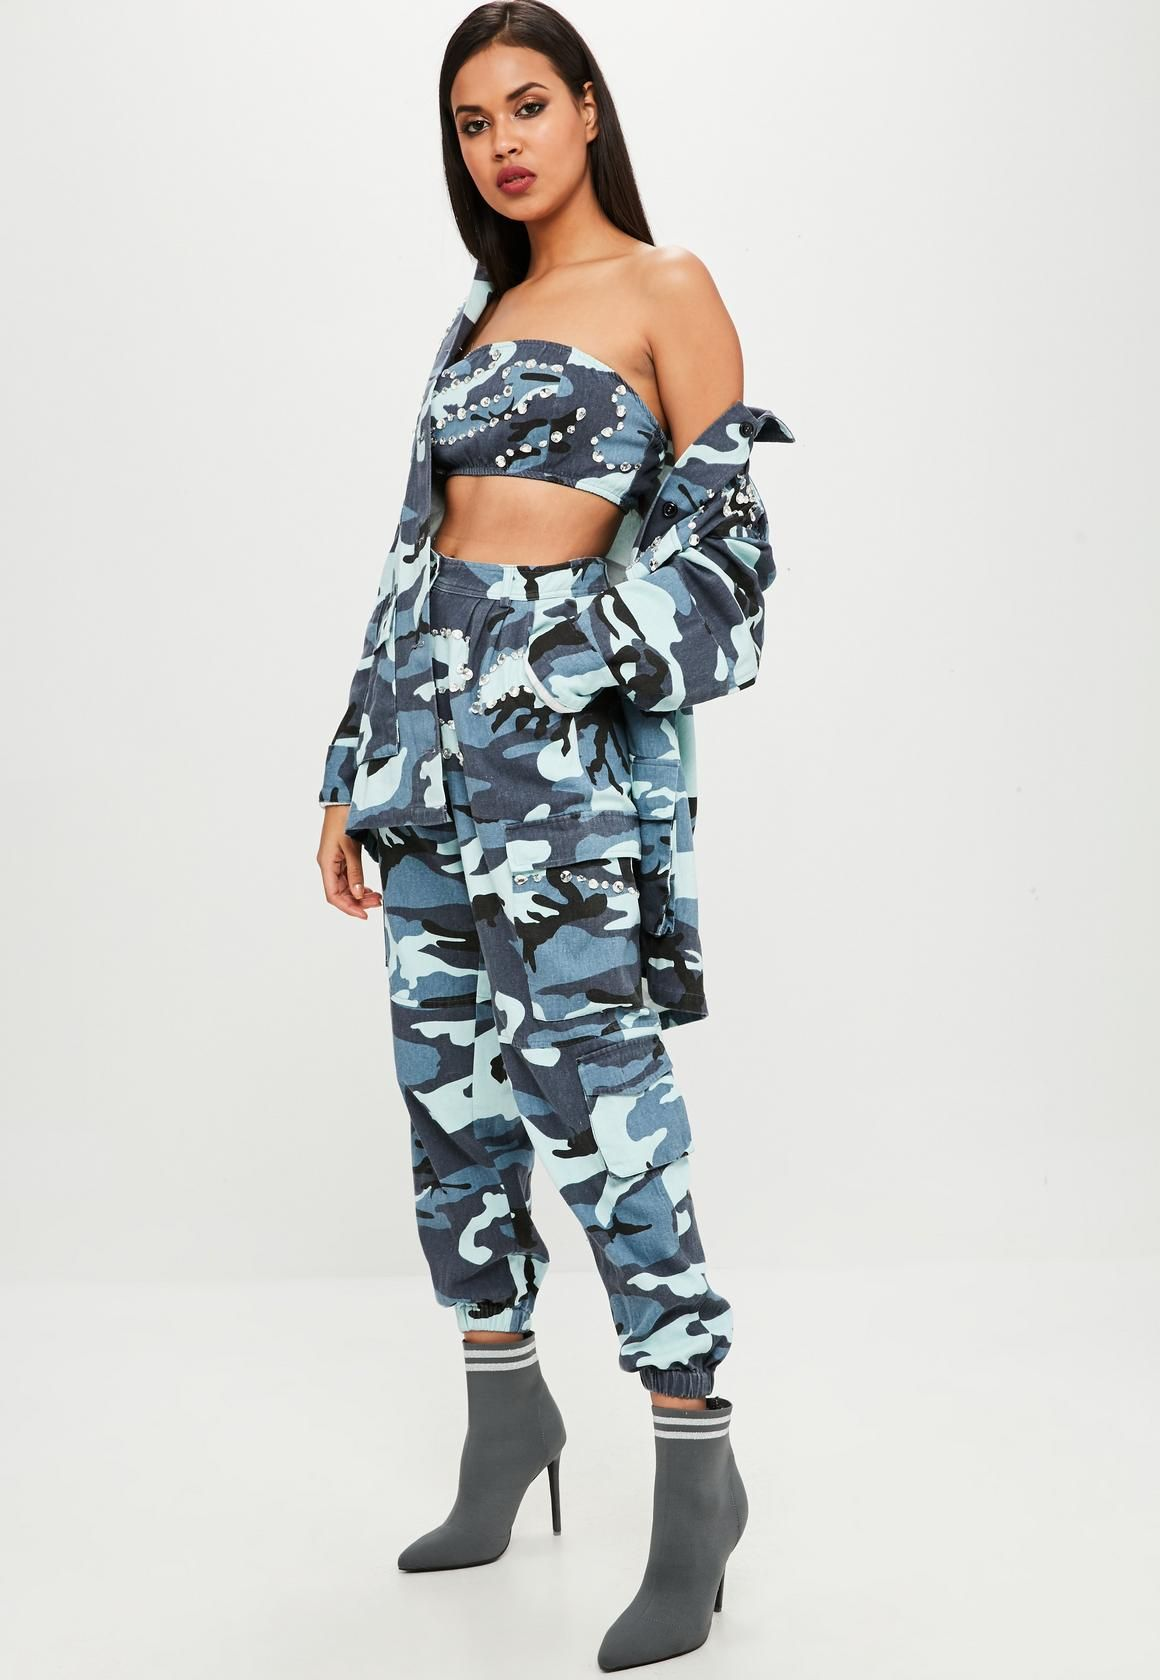 a0373a8f Missguided - Carli Bybel x Missguided Blue Camo Cargo Pants ...